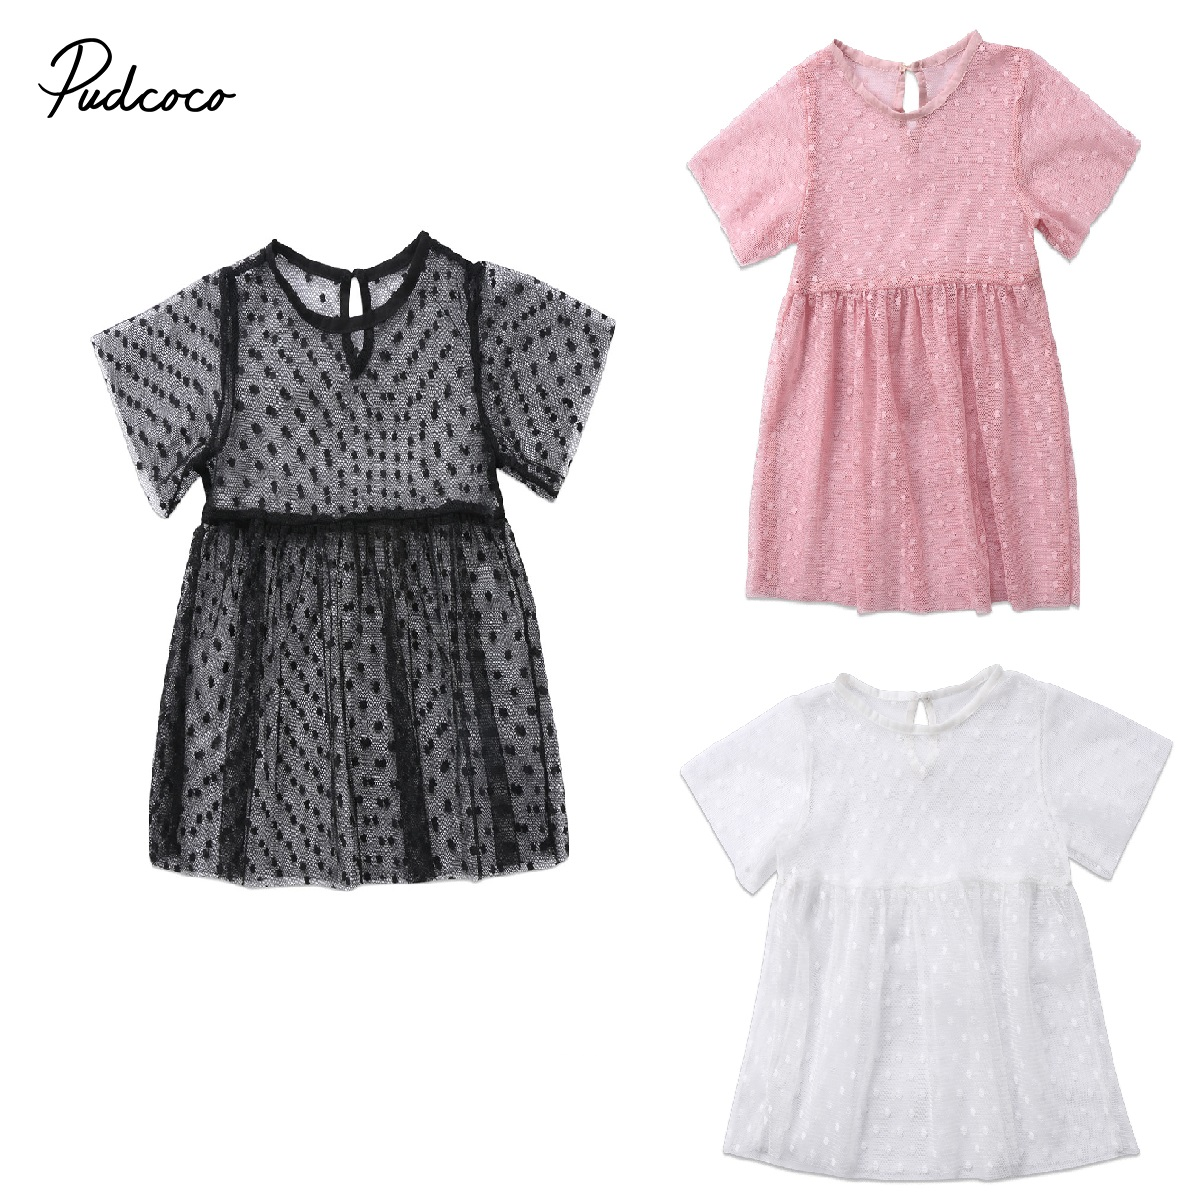 2018 Brand New Toddler Infant Child Kids Baby Girls Perspective Derss Princess Dress Mesh Gown Party Wedding Pageant Tutu 6M-5T girls princess dress summer new sleeveless for 6 7 8 9 10 11 12 13 14 15 16 years child brand wedding party long tutu full dress